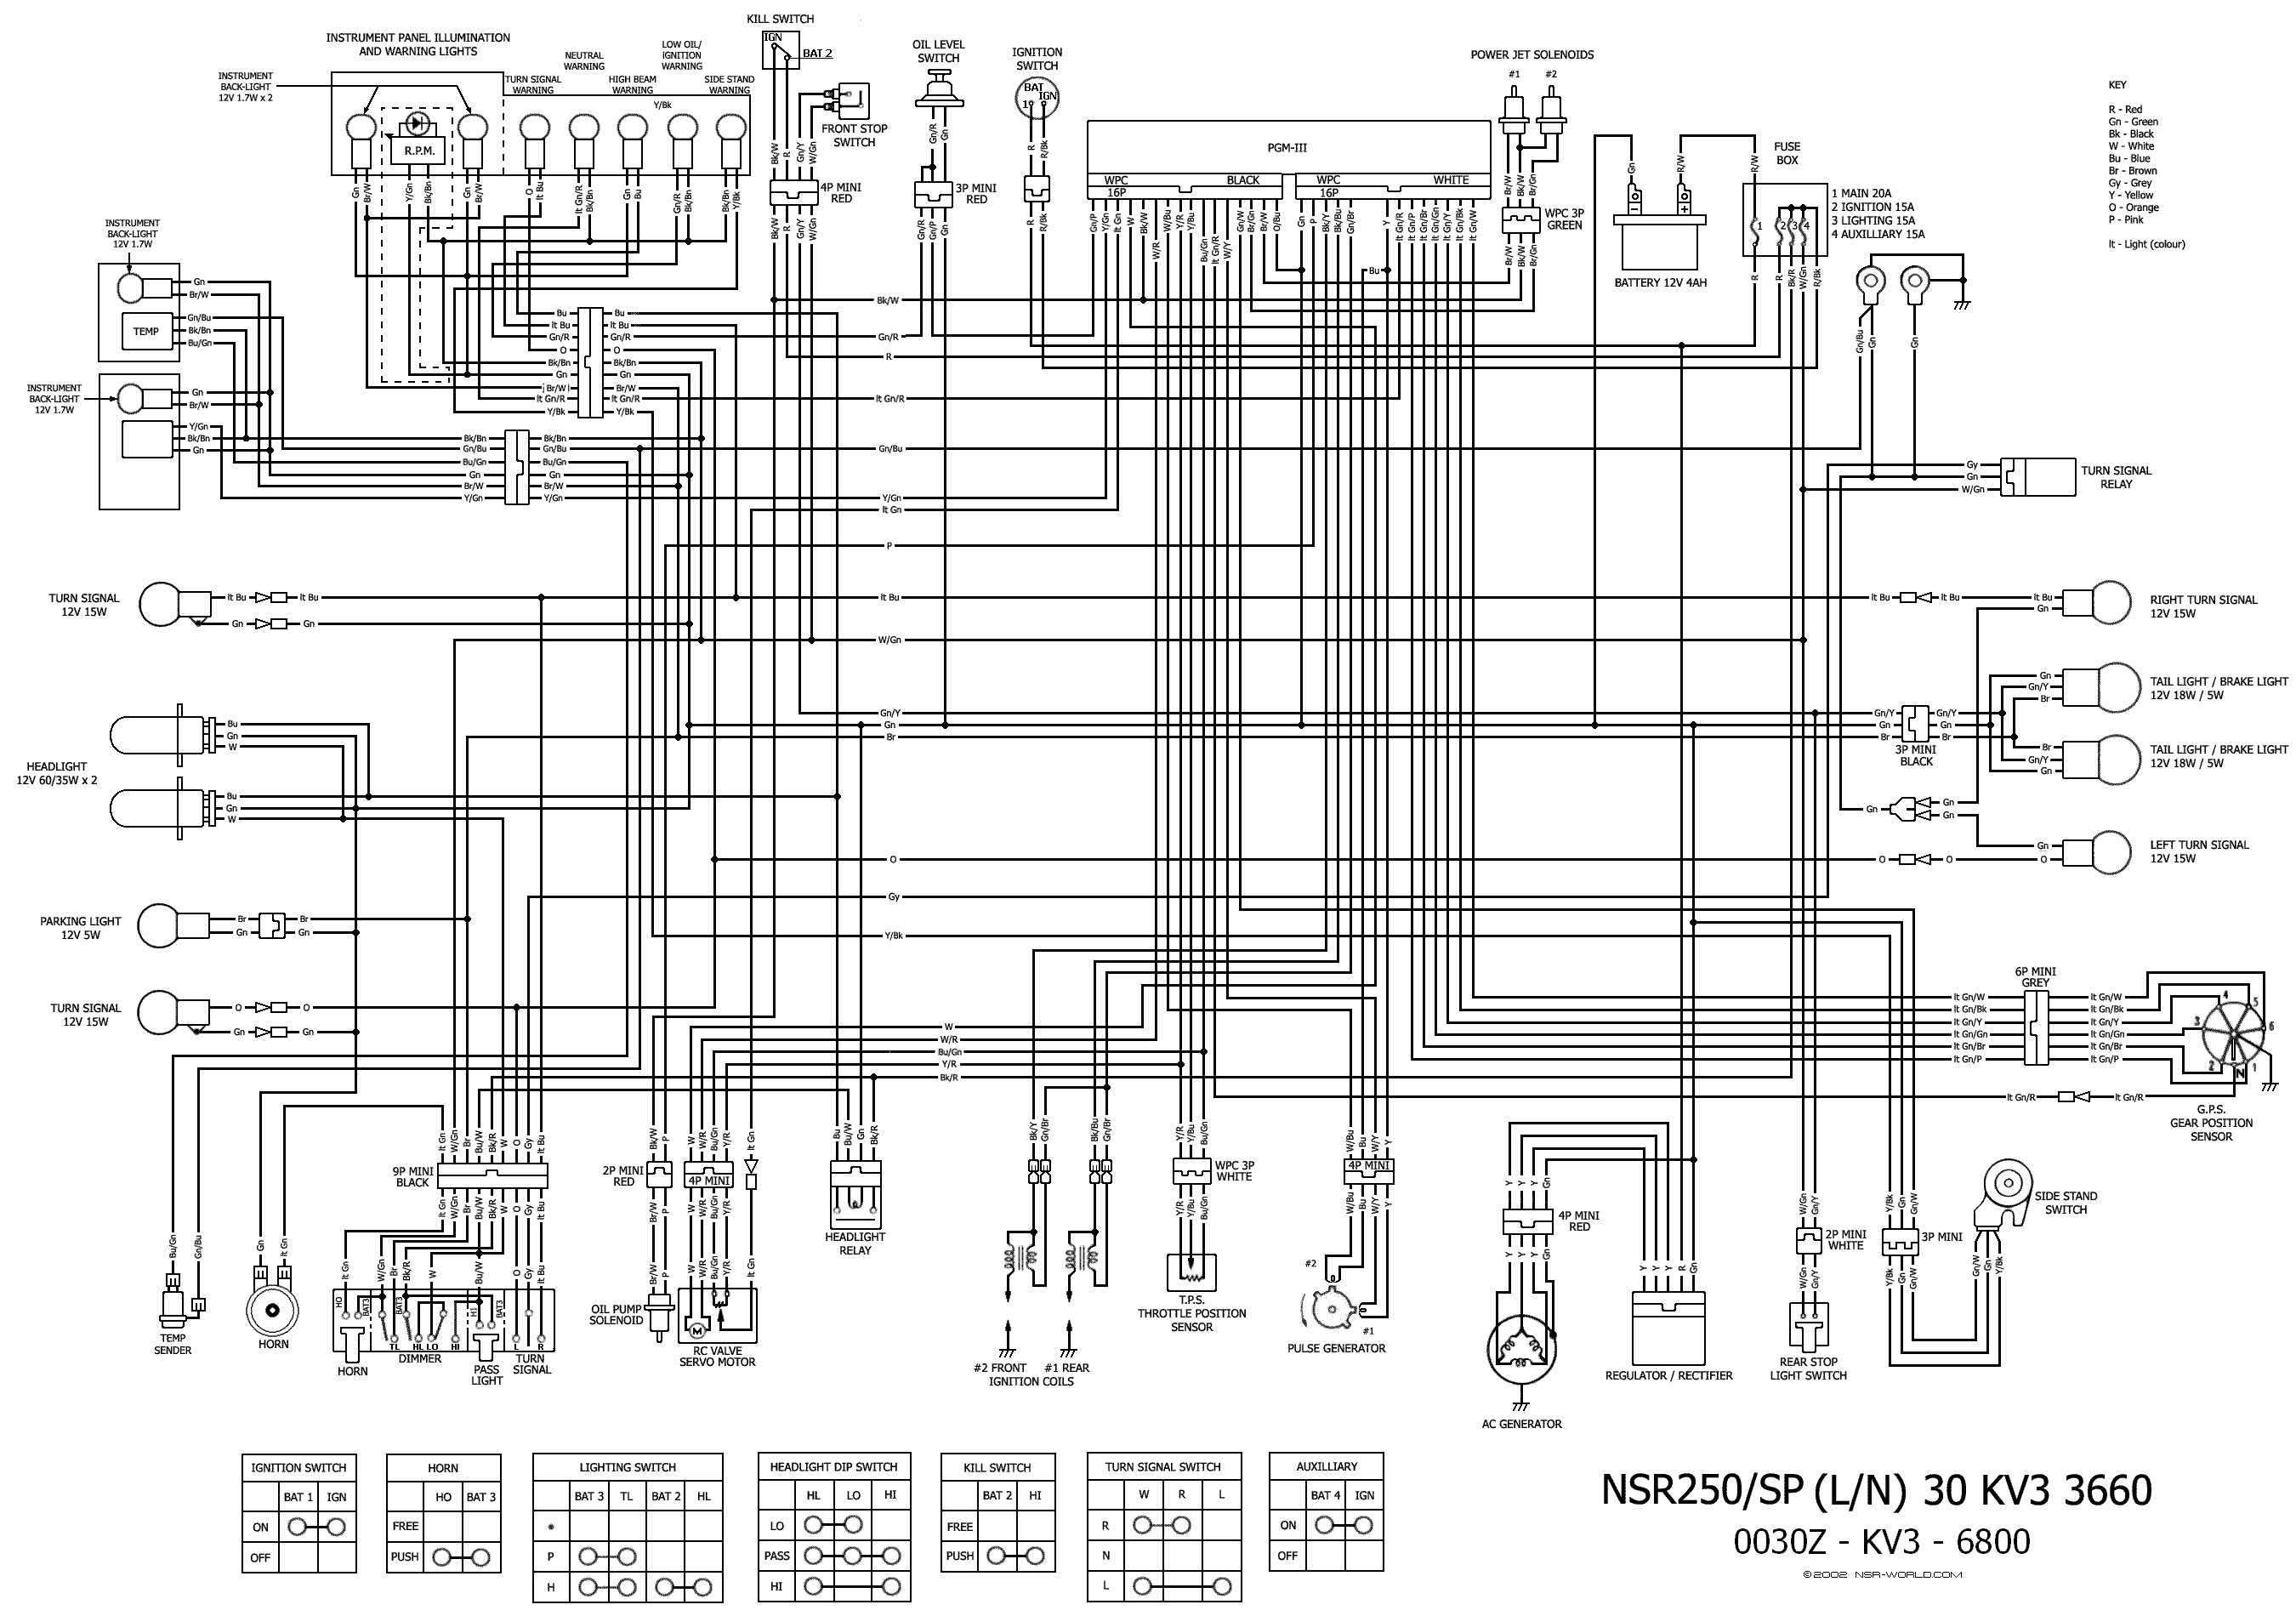 enchanting 2006 gsxr 1000 wiring diagram model electrical circuit rh suaiphone org 2005 Gsxr 1000 Wiring Diagram 2006 suzuki gsxr 1000 wiring diagram